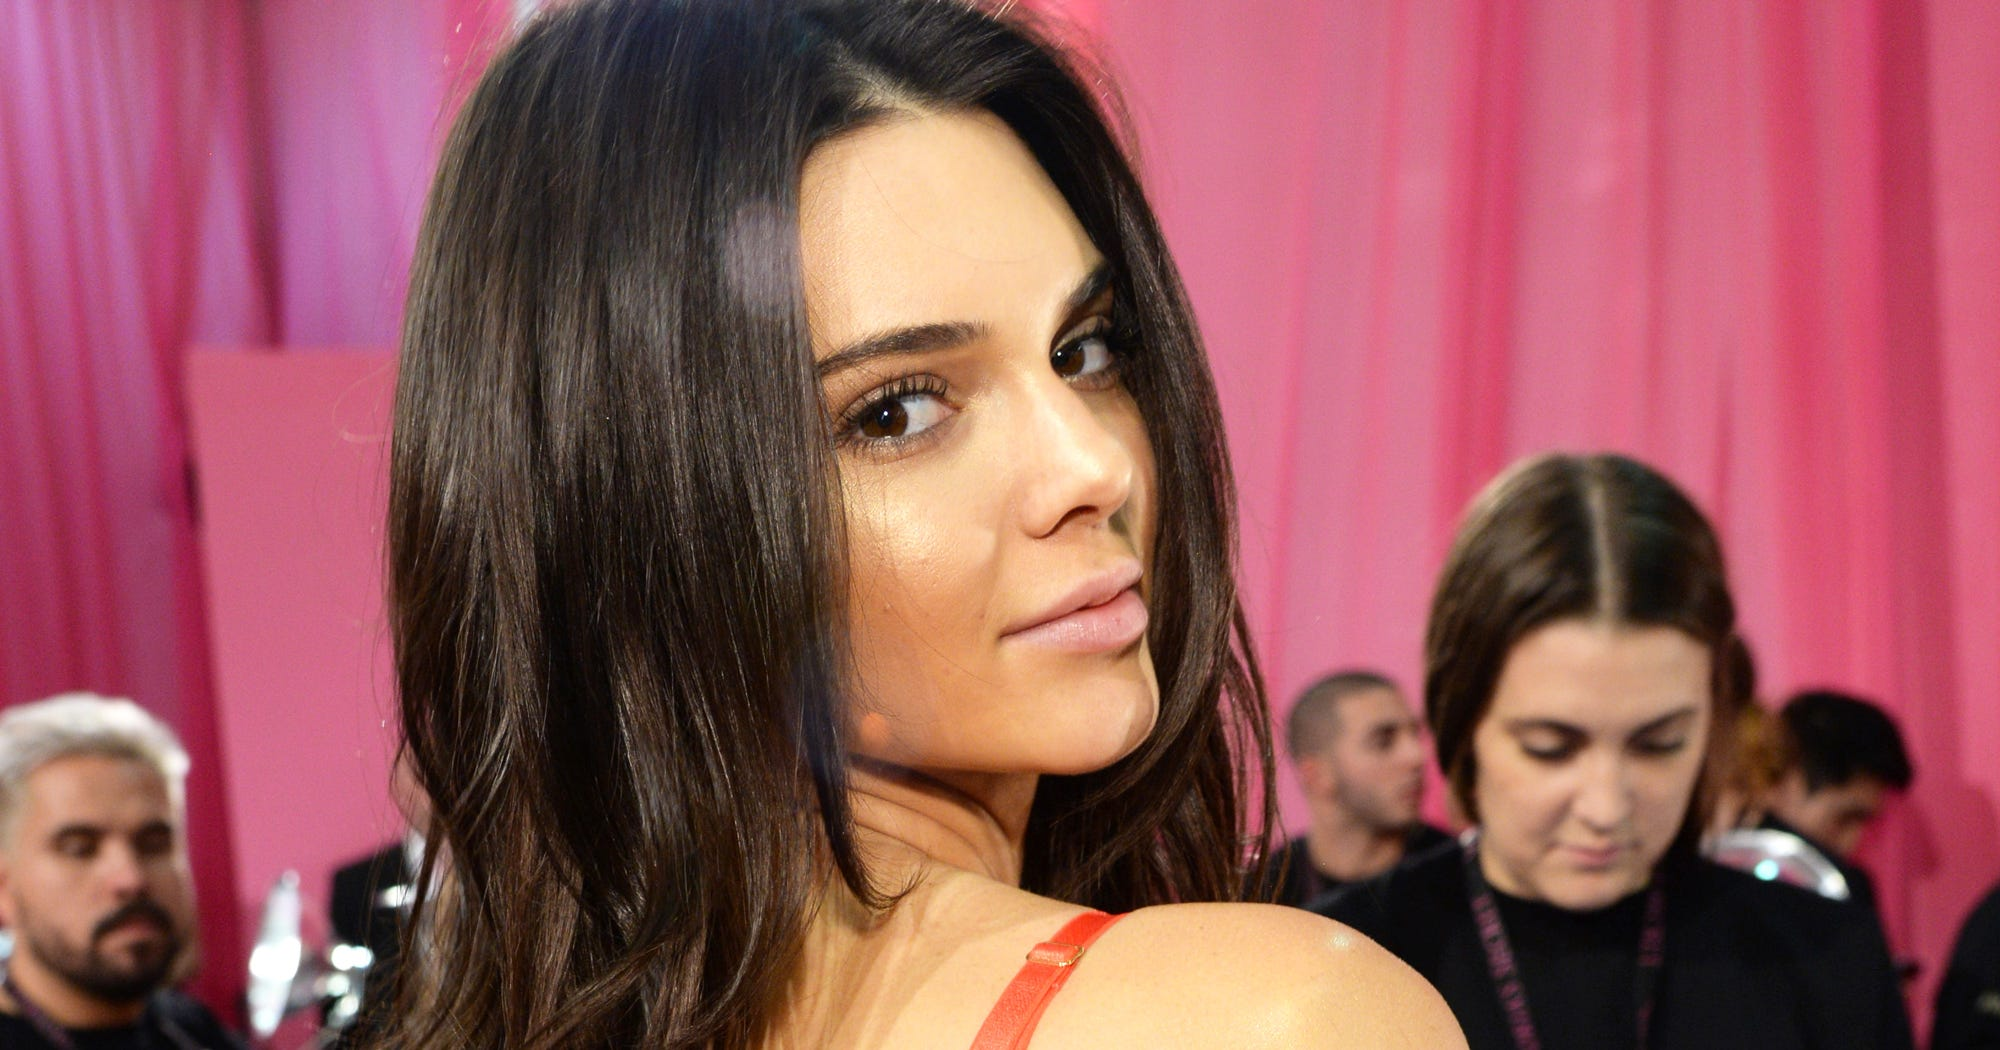 Prepare Yourselves With This Guide To The Victoria's Secret Fashion Show